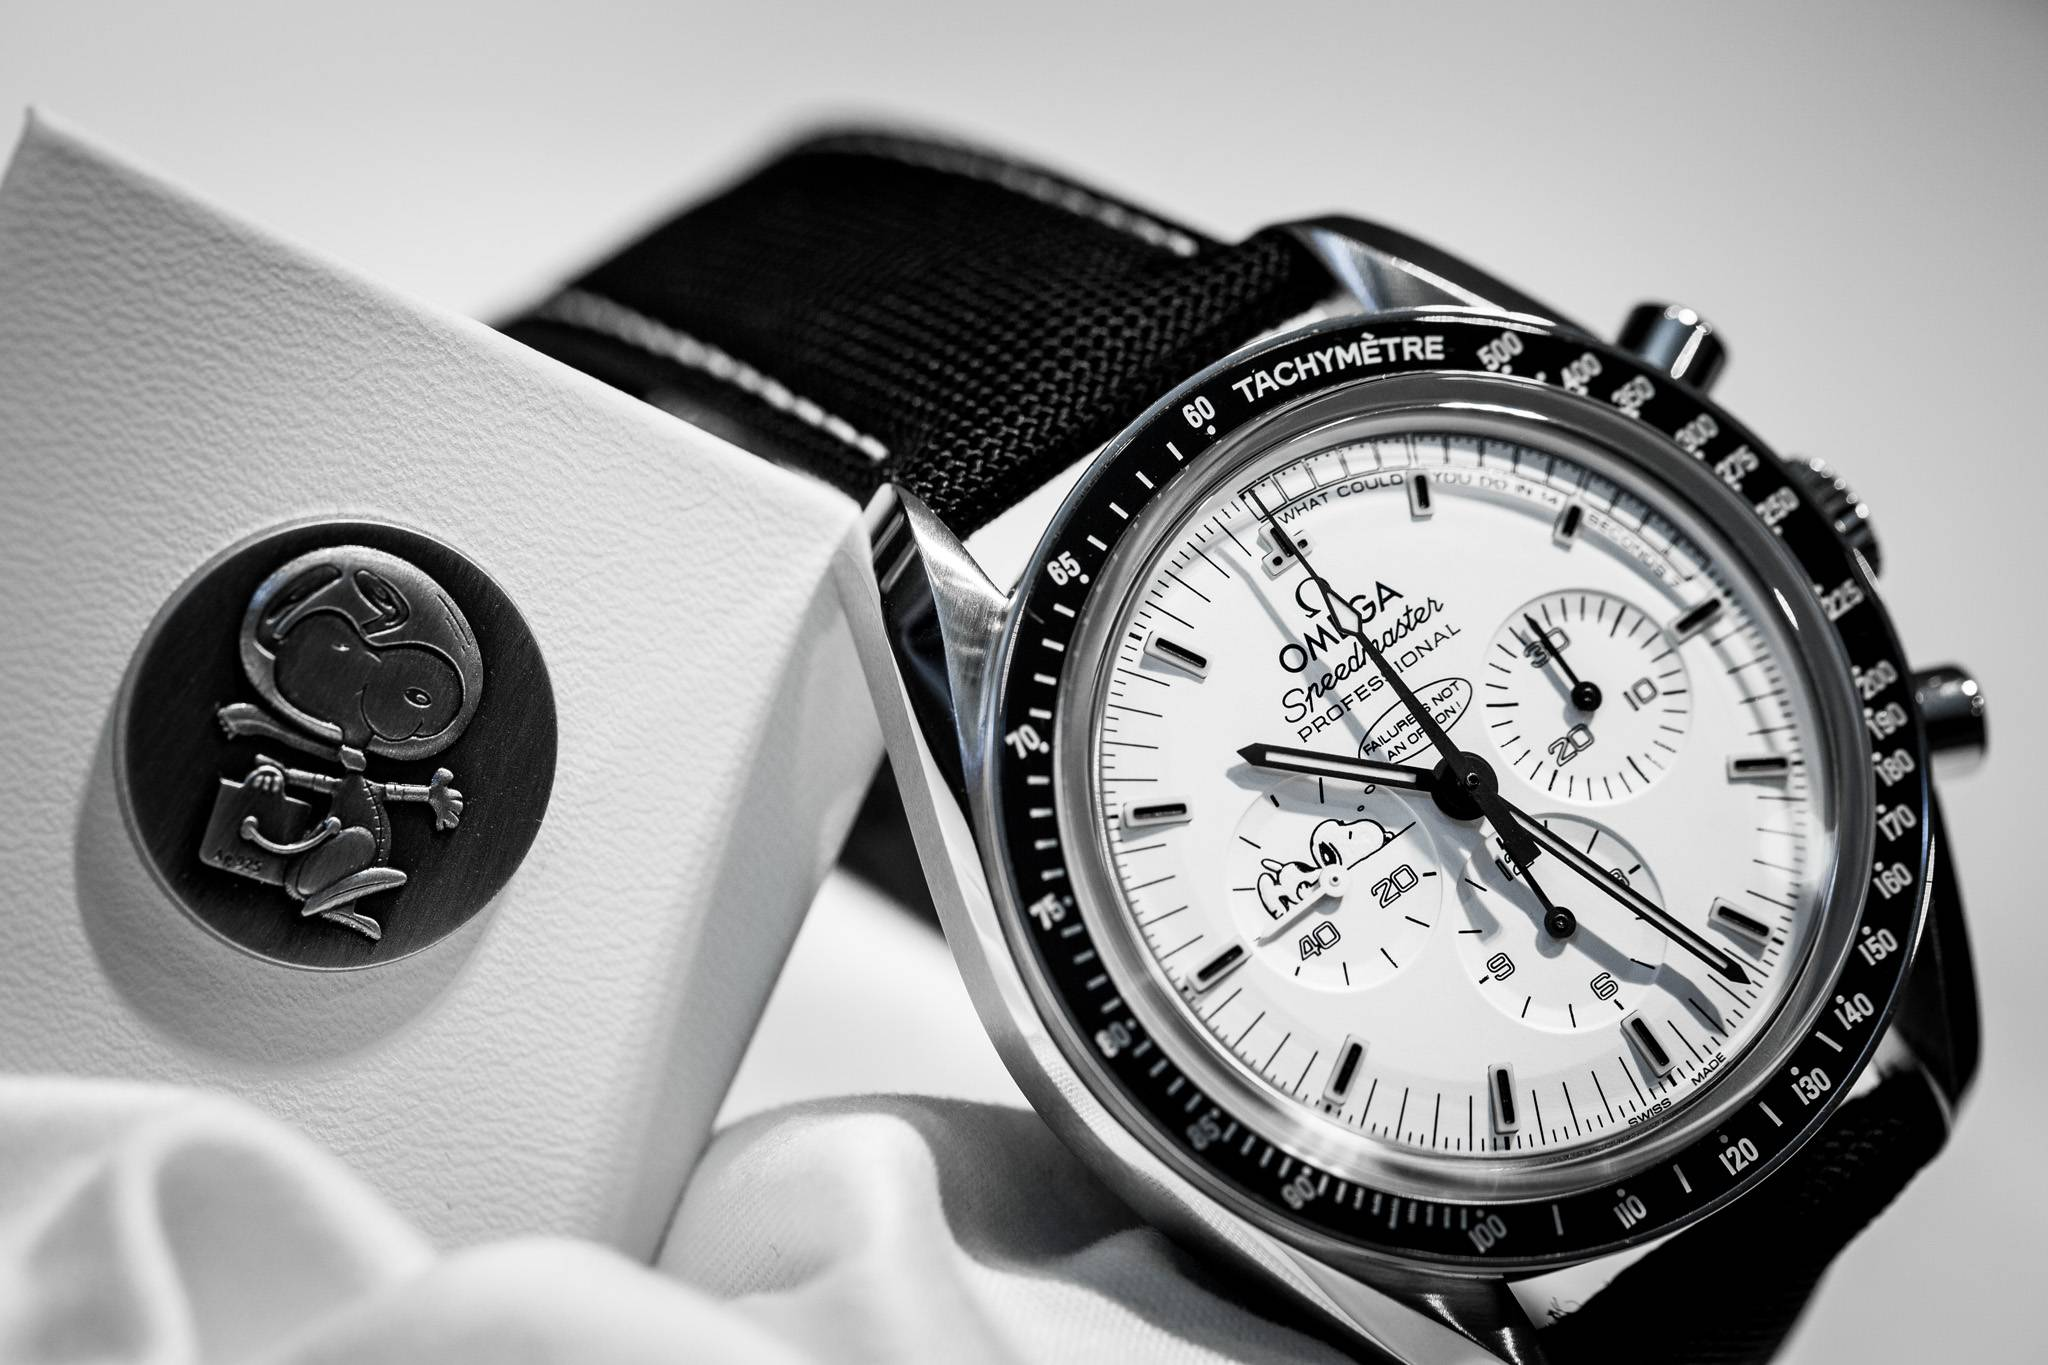 Omega Replica Speedmaster Apollo 13 Silver Snoopy Award Limited Edition Watch